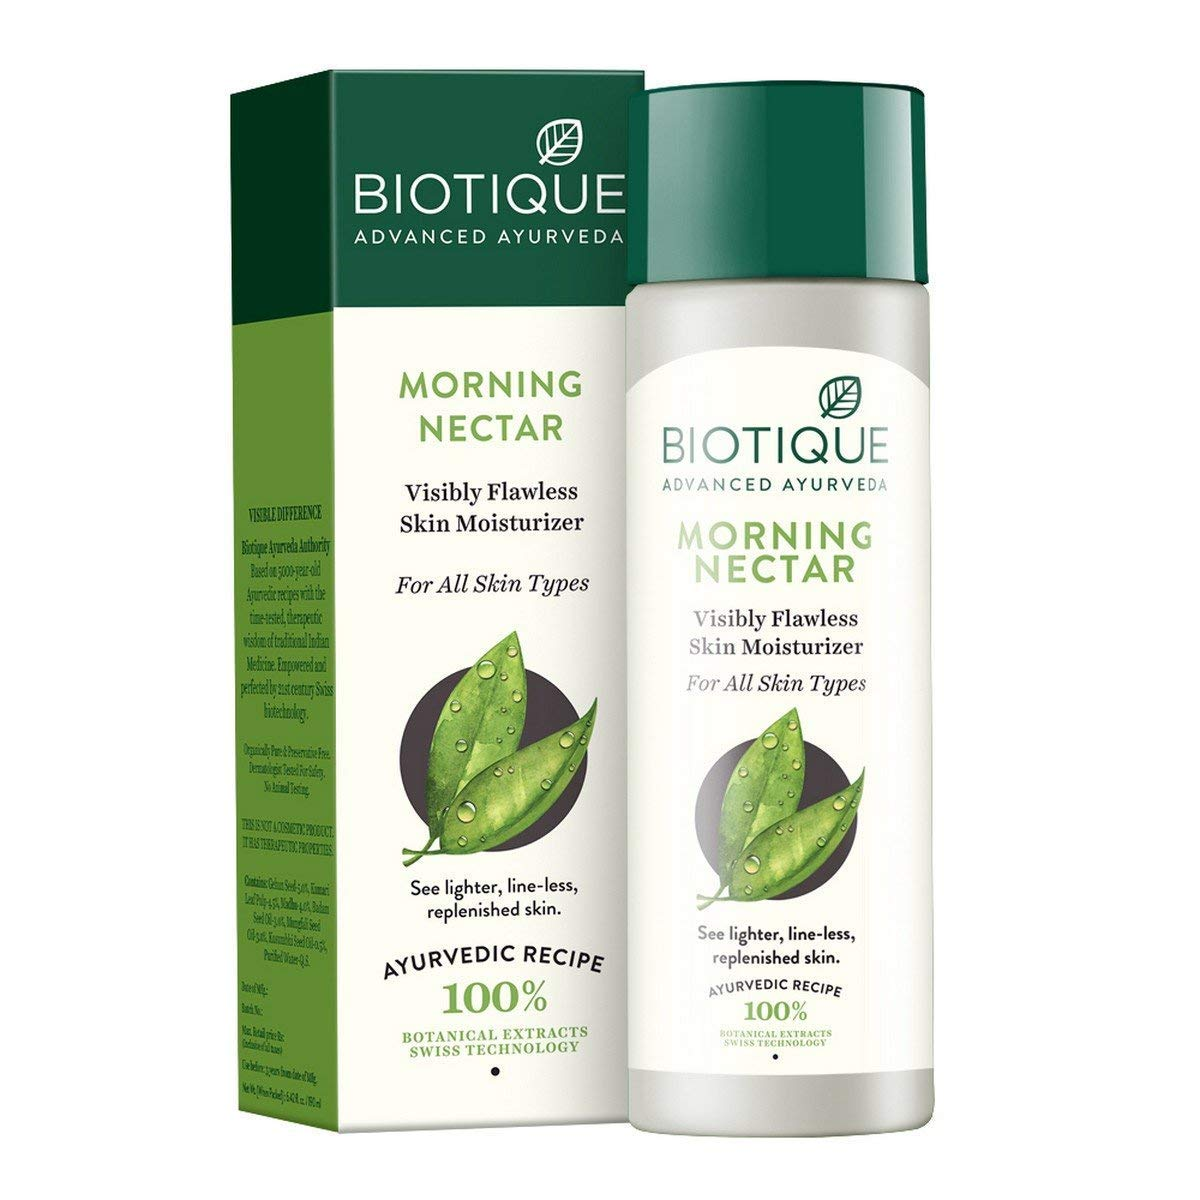 Buy Biotique Morning Nectar Flawless Skin Lotion for All Skin